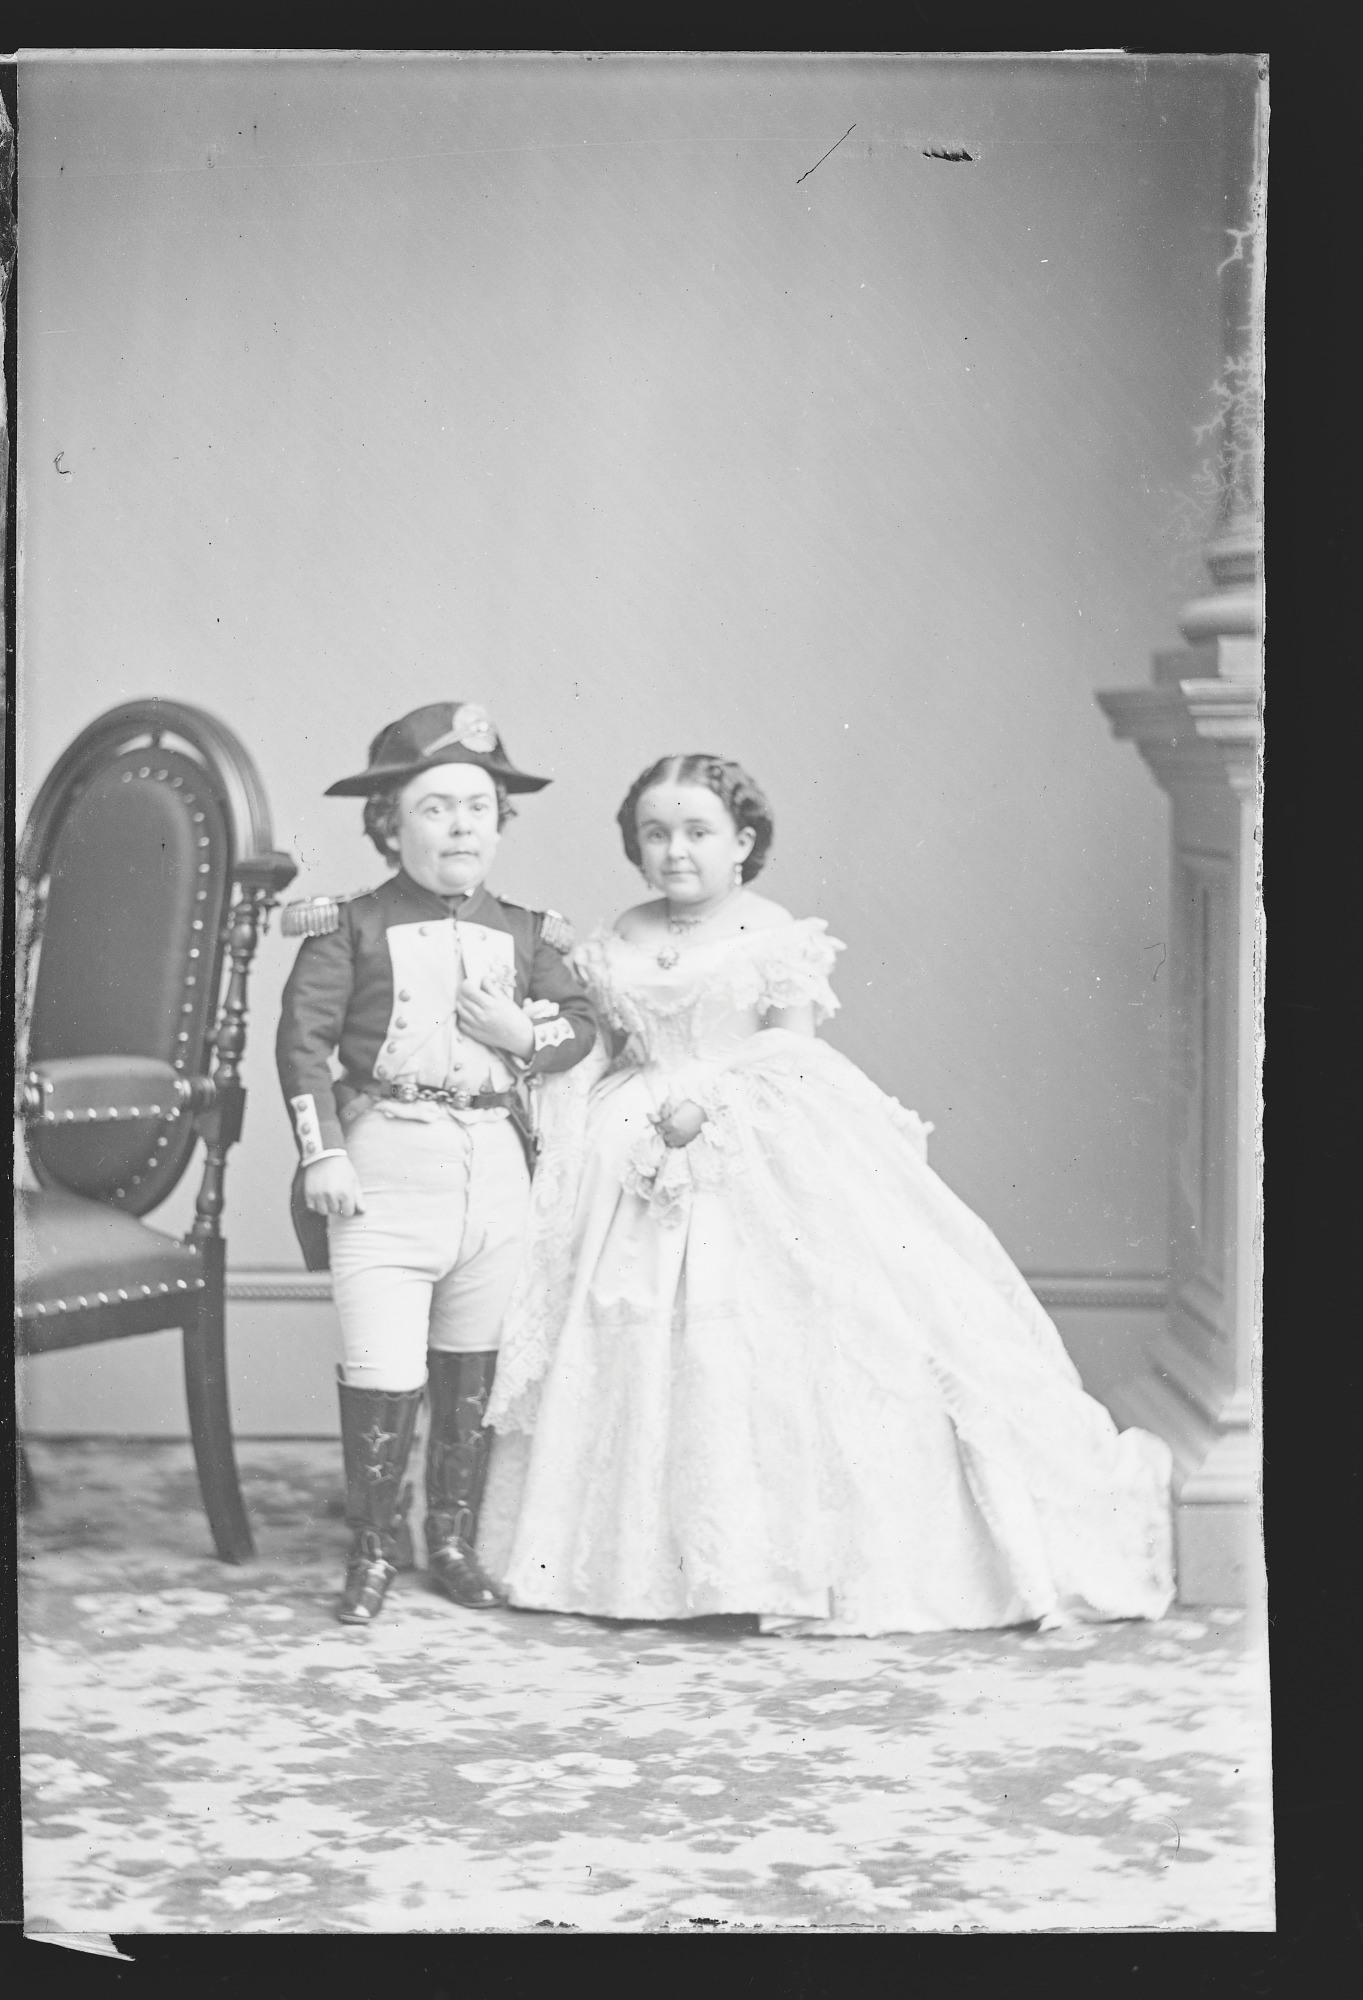 Charles and Lavinia Stratton